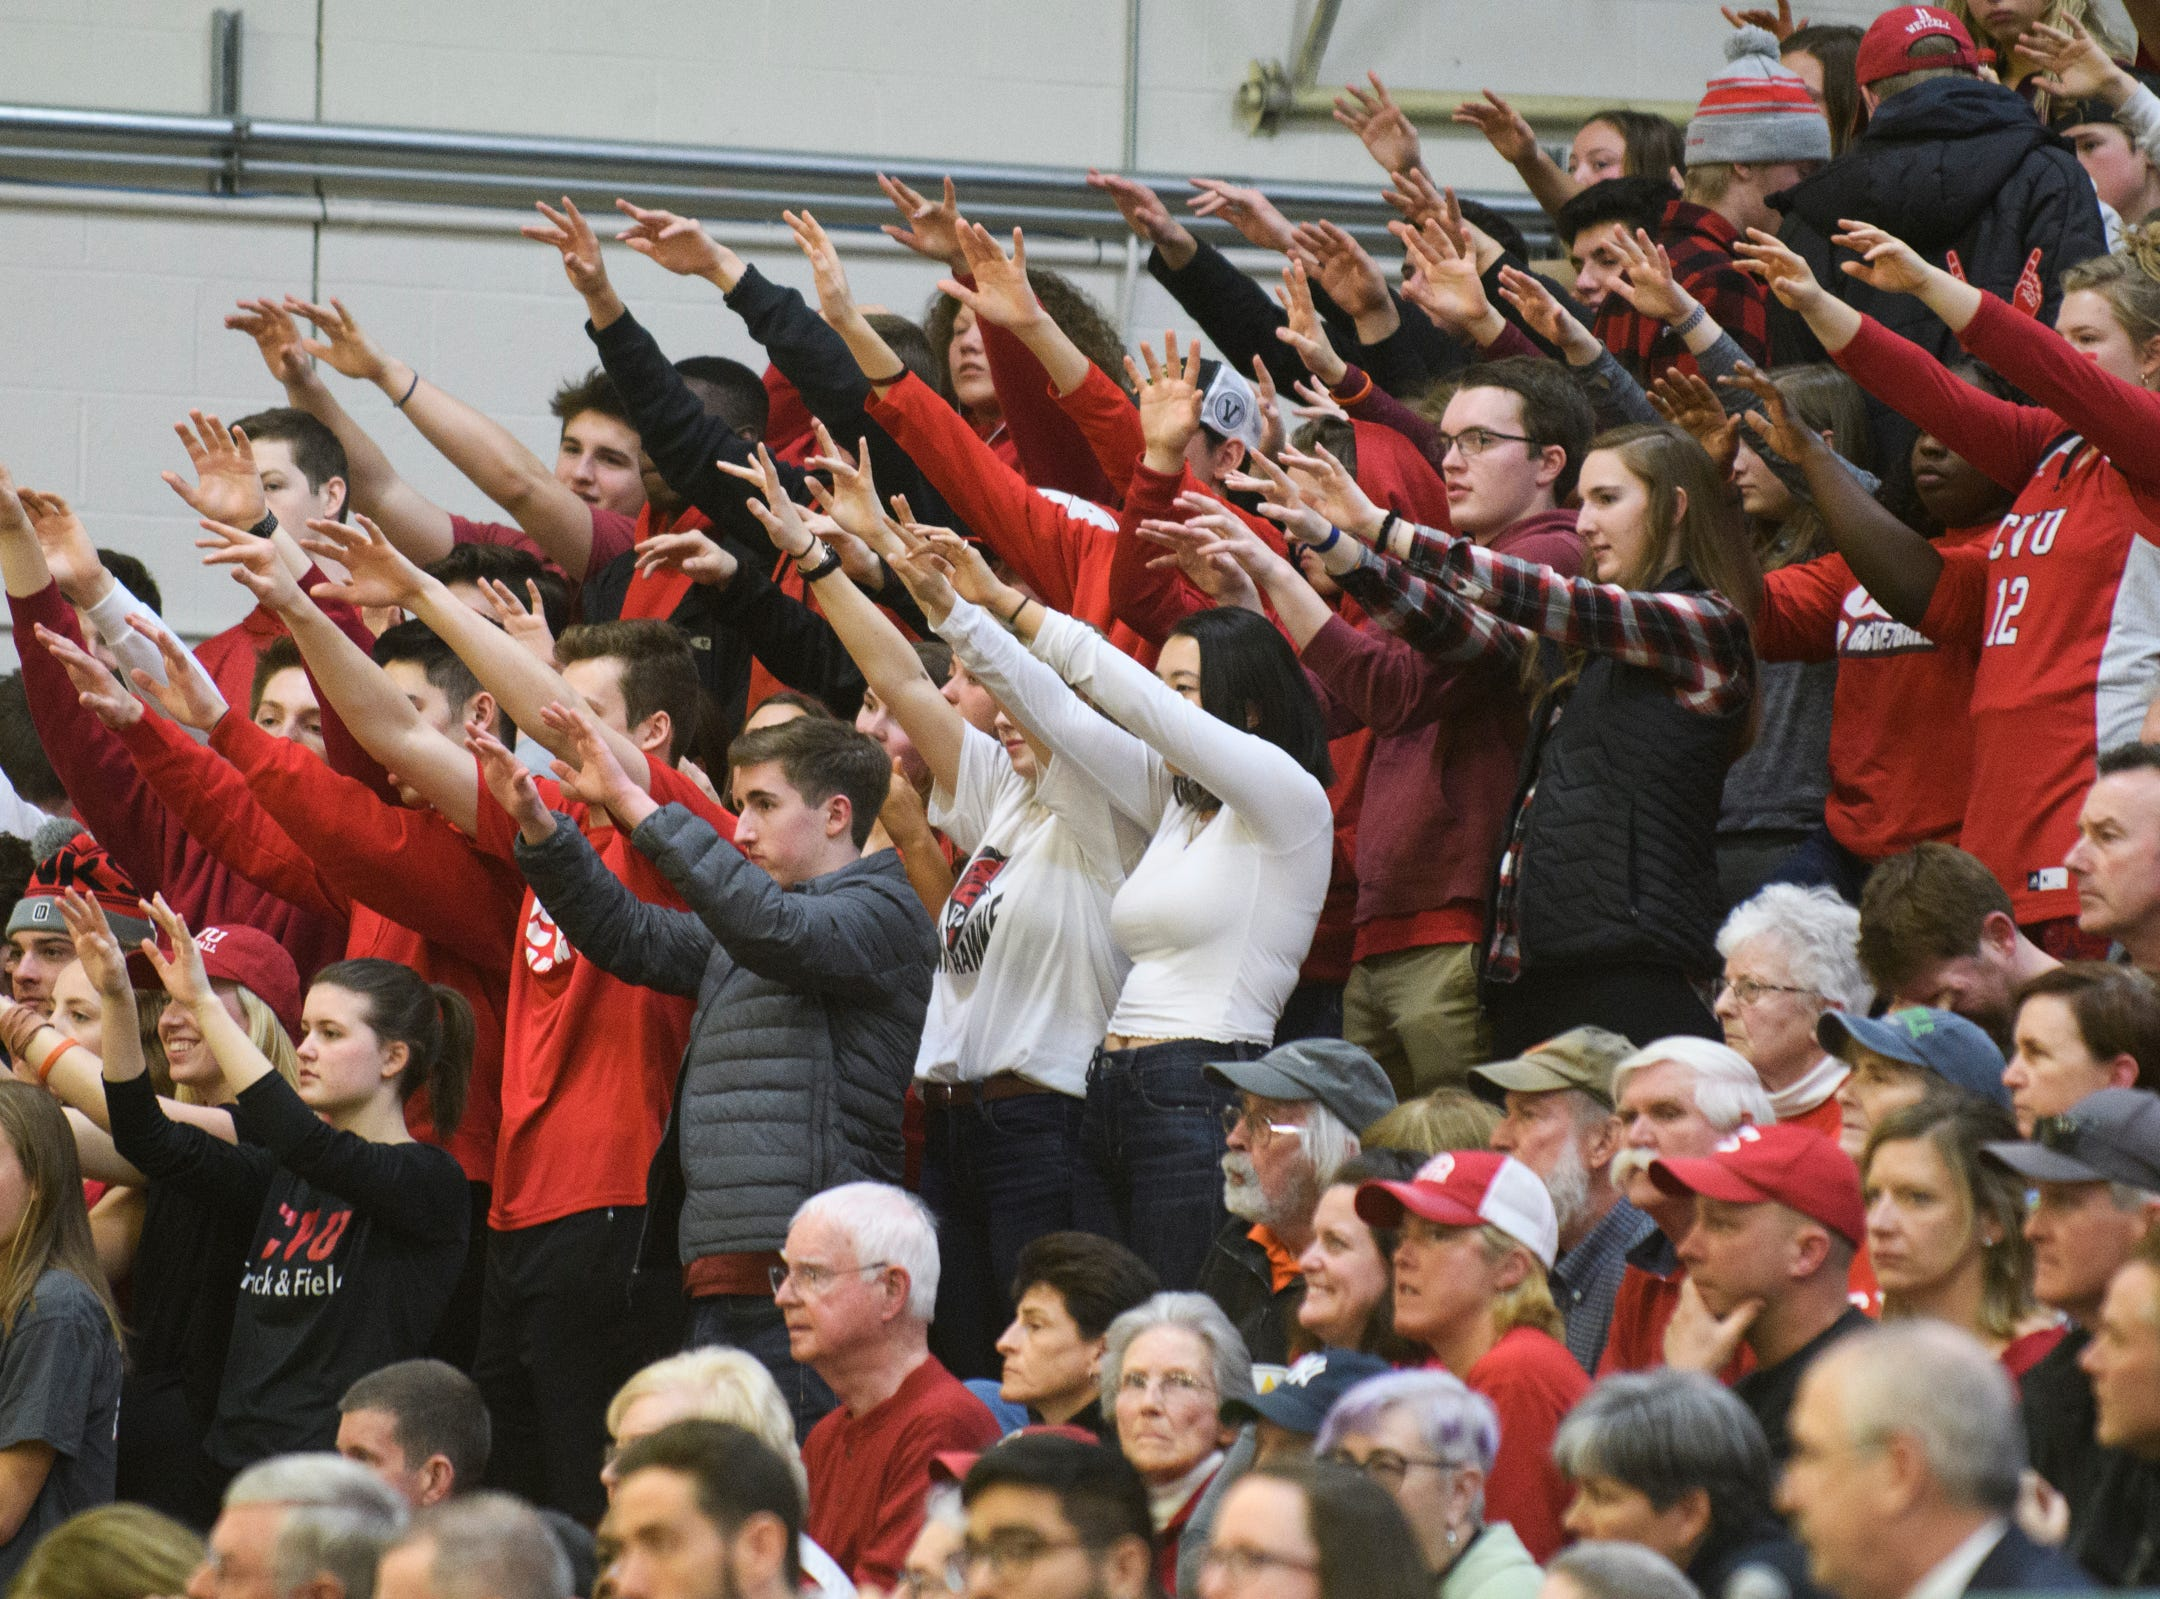 The CVU fans raise their hands during a free throw in the division I girls basketball championship basketball game between the St. Johnsbury Hilltoppers and the Champlain Valley Union Redhawks at Patrick Gym on Sunday afternoon March 10, 2019 in Burlington, Vermont.